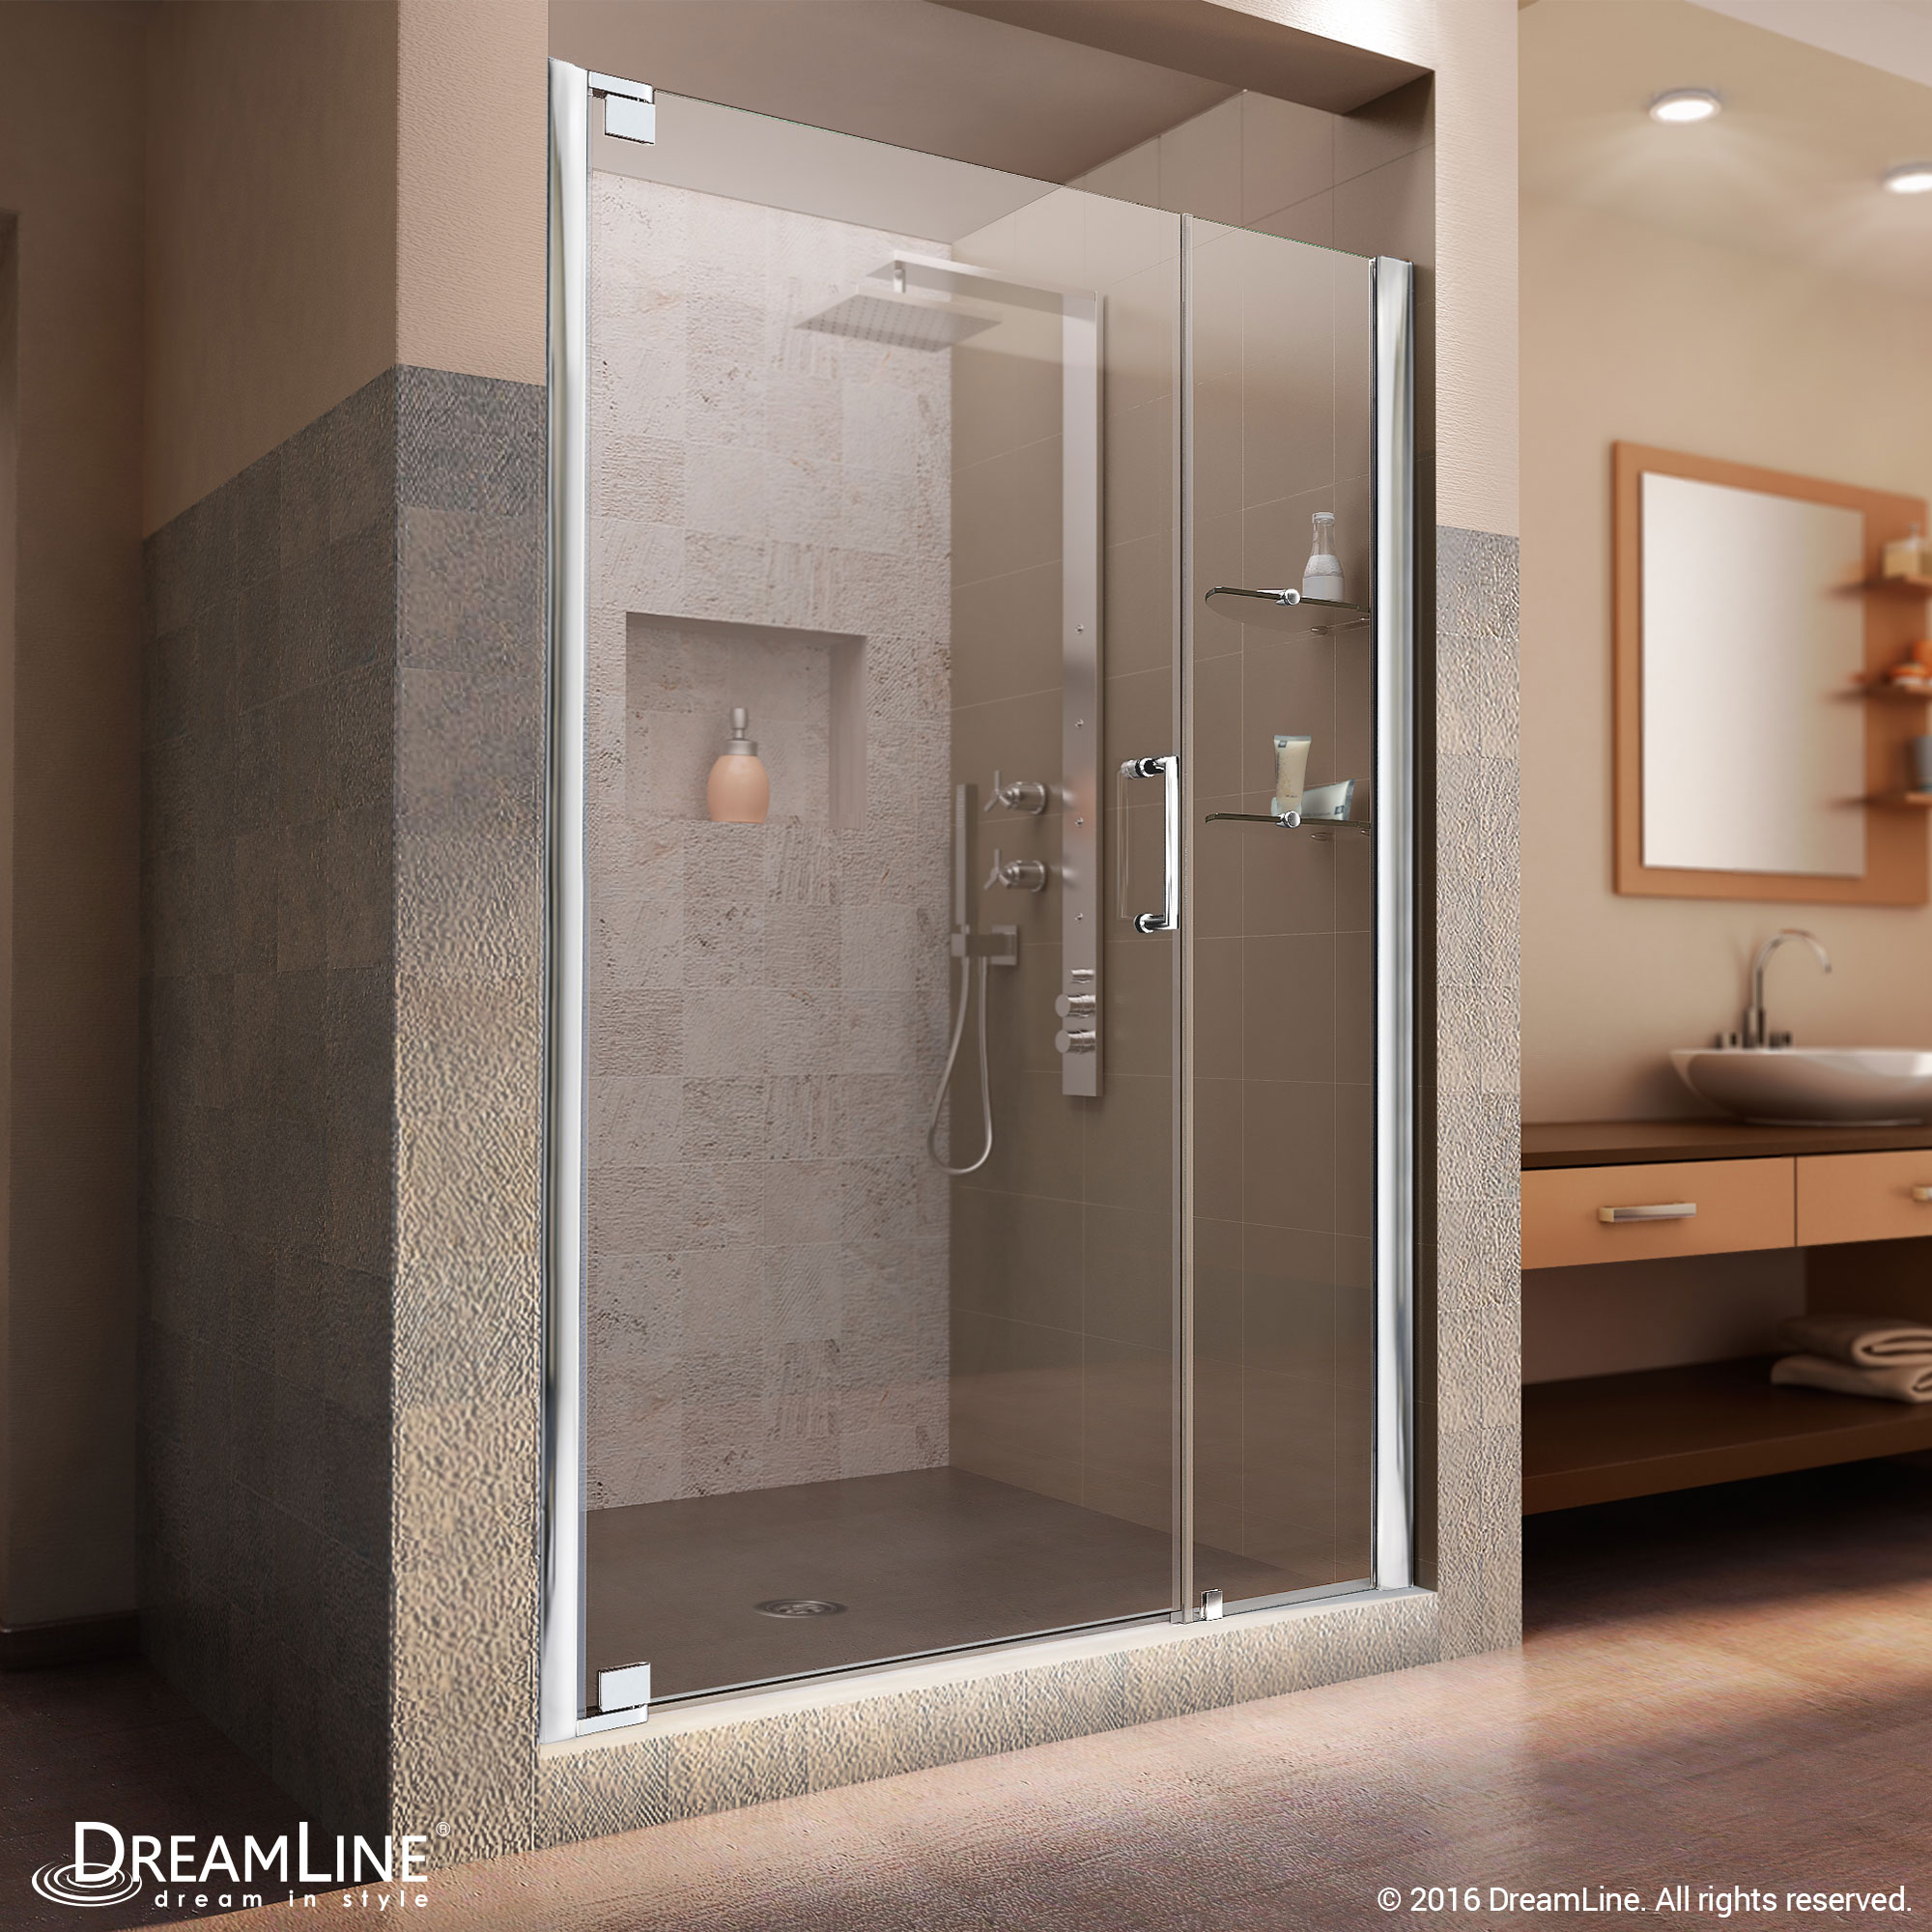 Dreamline Elegance 39 To 41 In Frameless Pivot Shower Door Clear 3